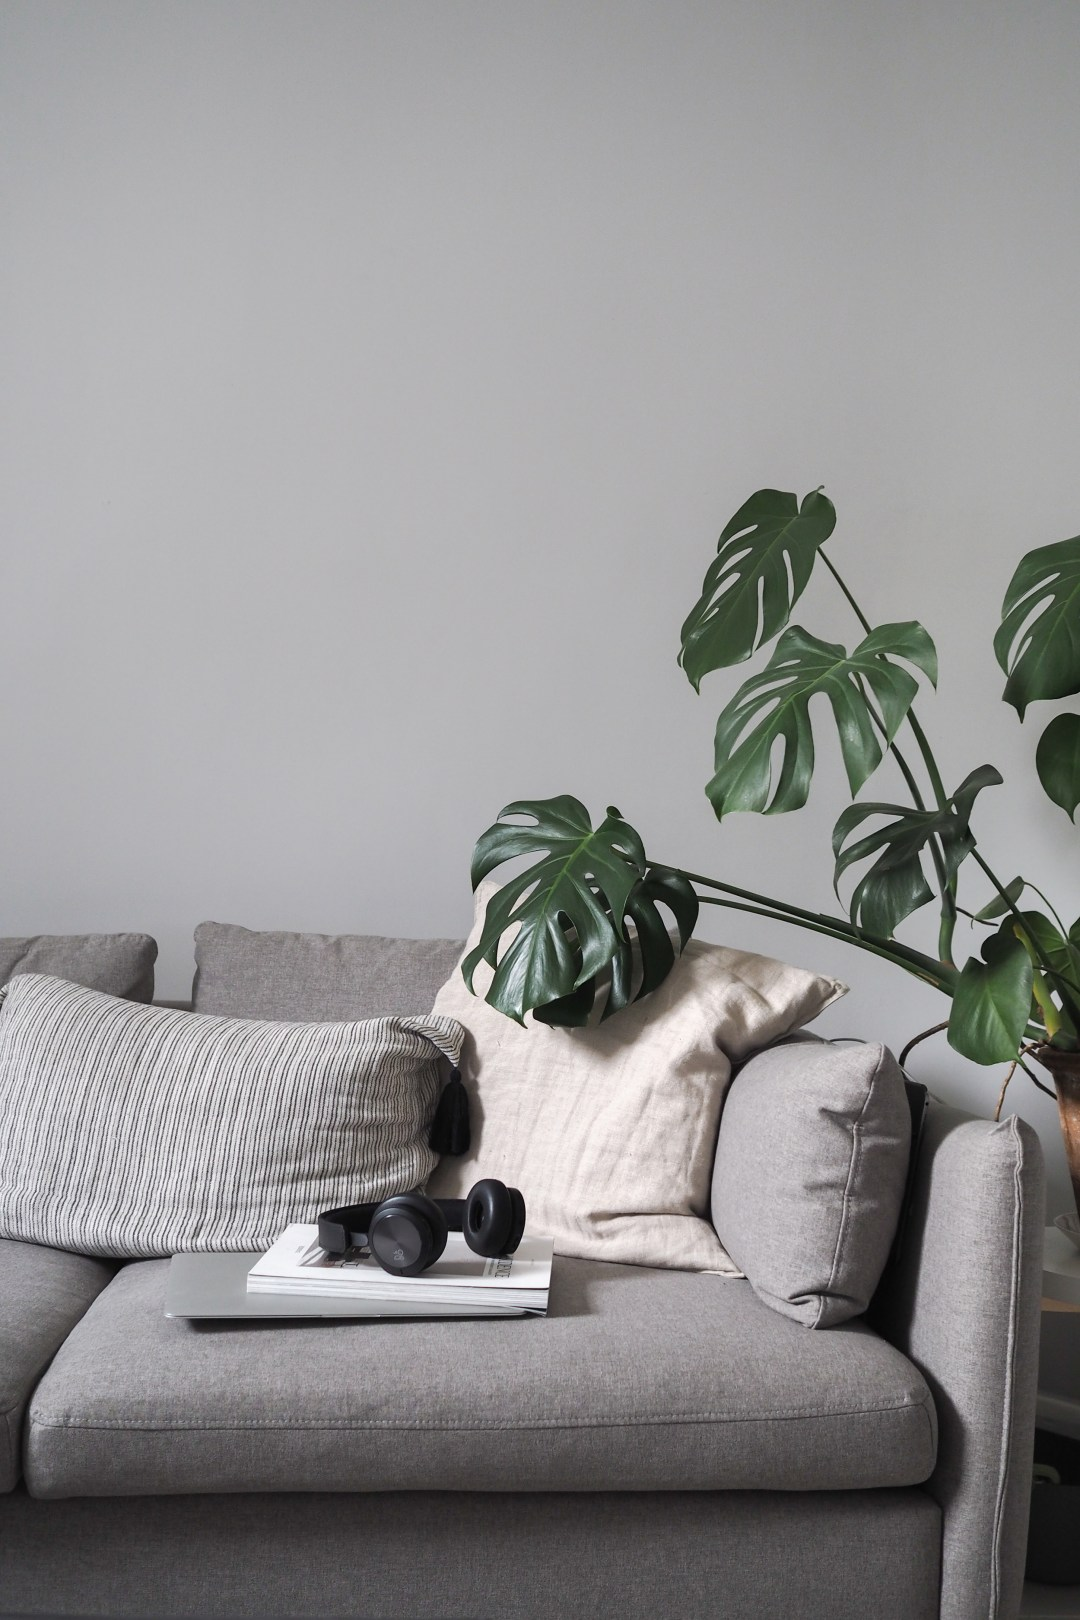 Scandinavian style - a look into the home of Cate St Hill